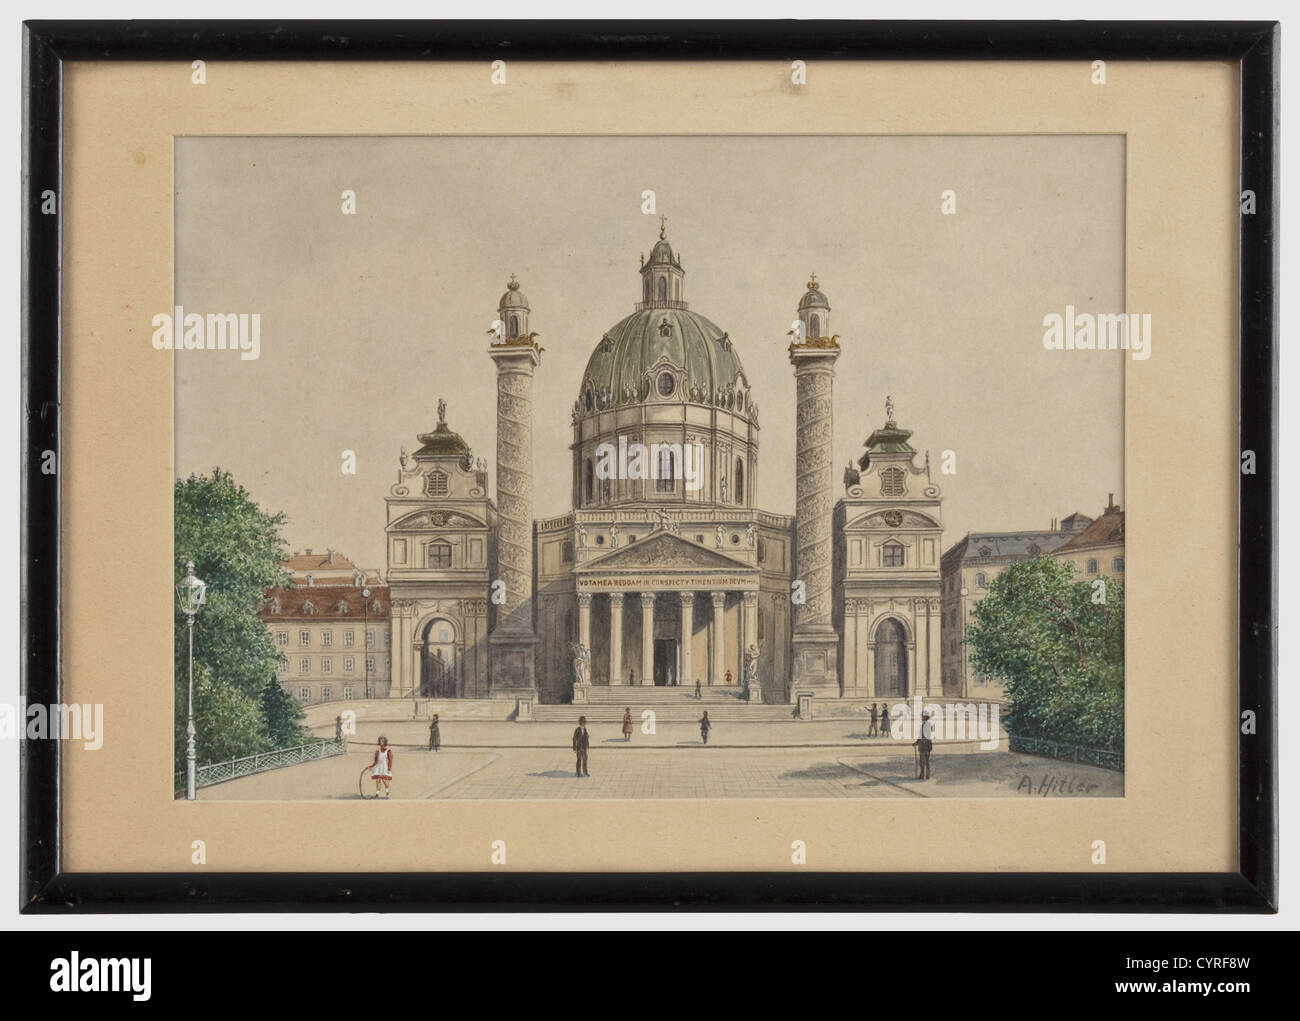 Adolf Hitler - watercolour Karlskirche in Vienna circa 1910 - 12, from his private collection Watercolour on paper, - Stock Image